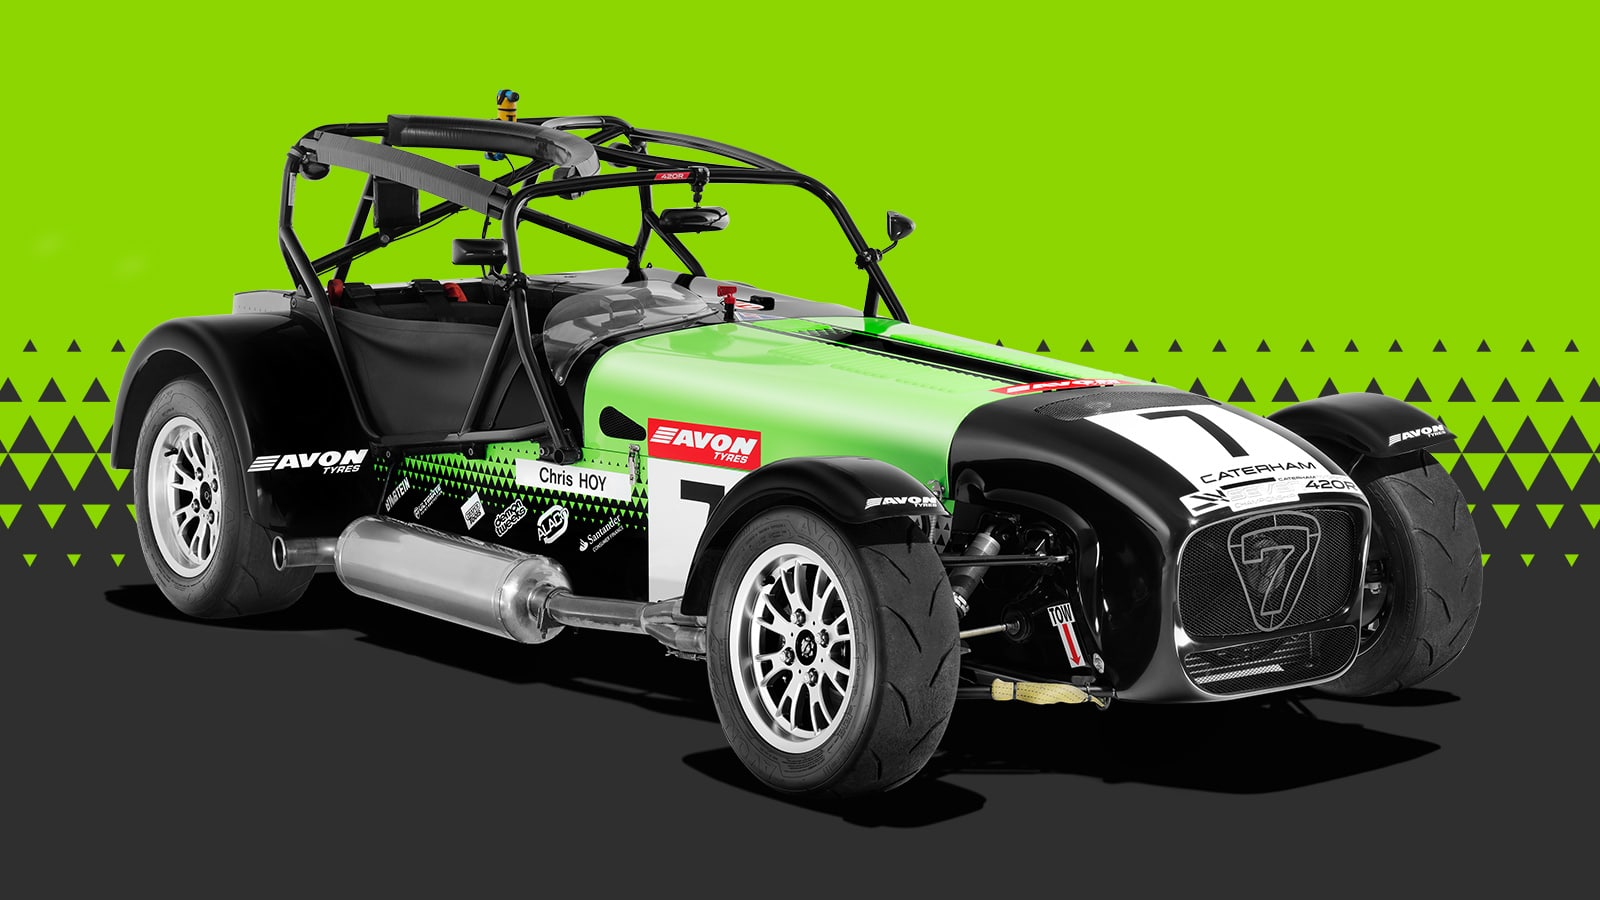 NEW YEAR, NEW RACE: CATERHAM MOTORSPORT TO HOST INDUSTRY FIRST MULTI-CLASS ENDURANCE RACE